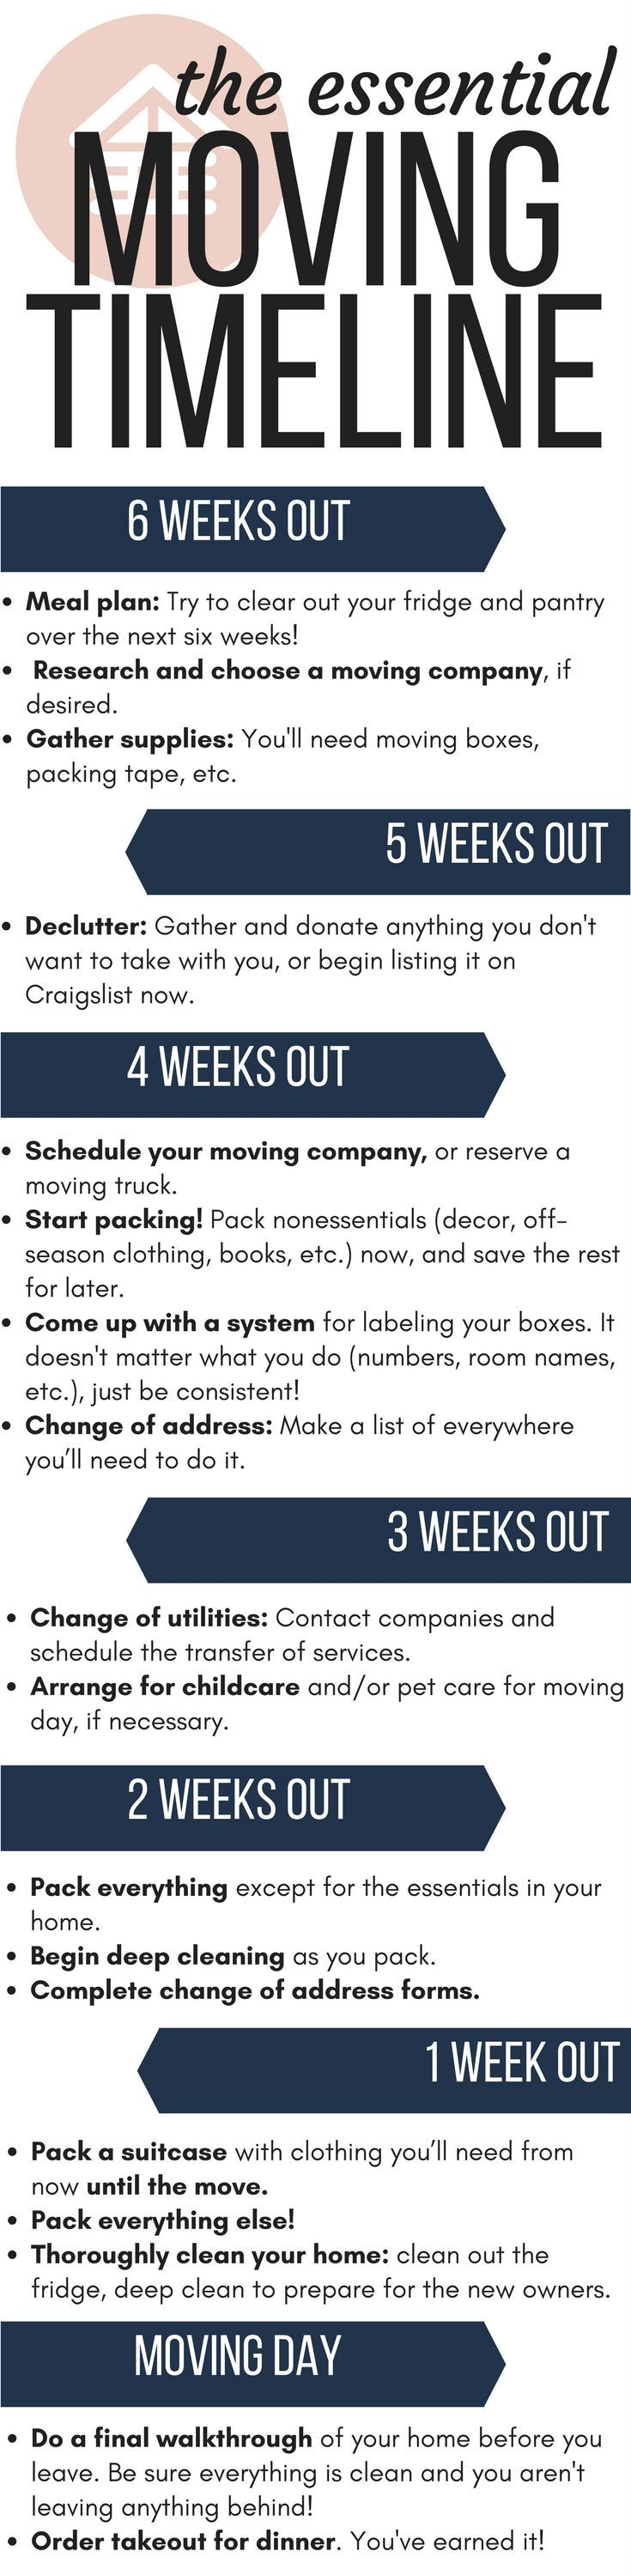 A 6 week moving checklist that will help you get organized to move to a new home. A free printable to get organized - you can use it as a checklist to help you pack, organize, and prepare to move.